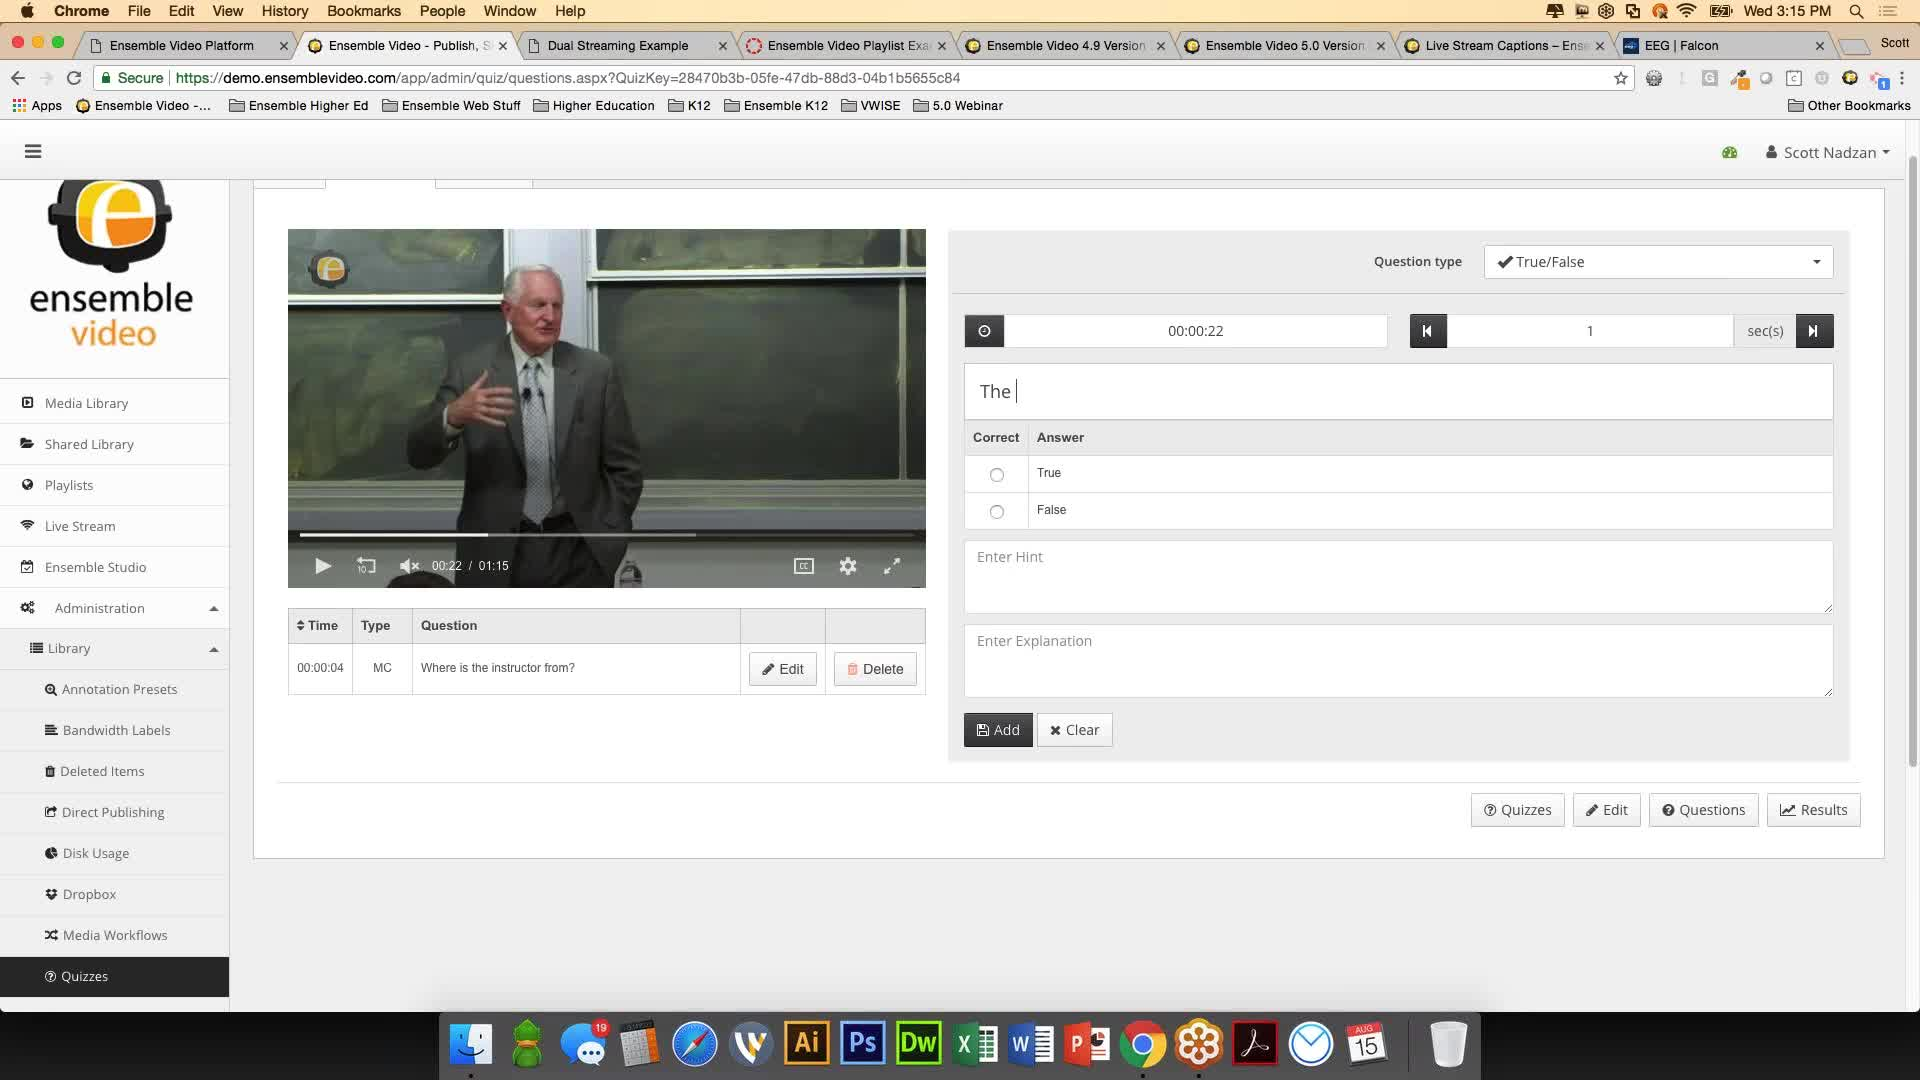 What's New in Ensemble Video 5.0 & 4.9?